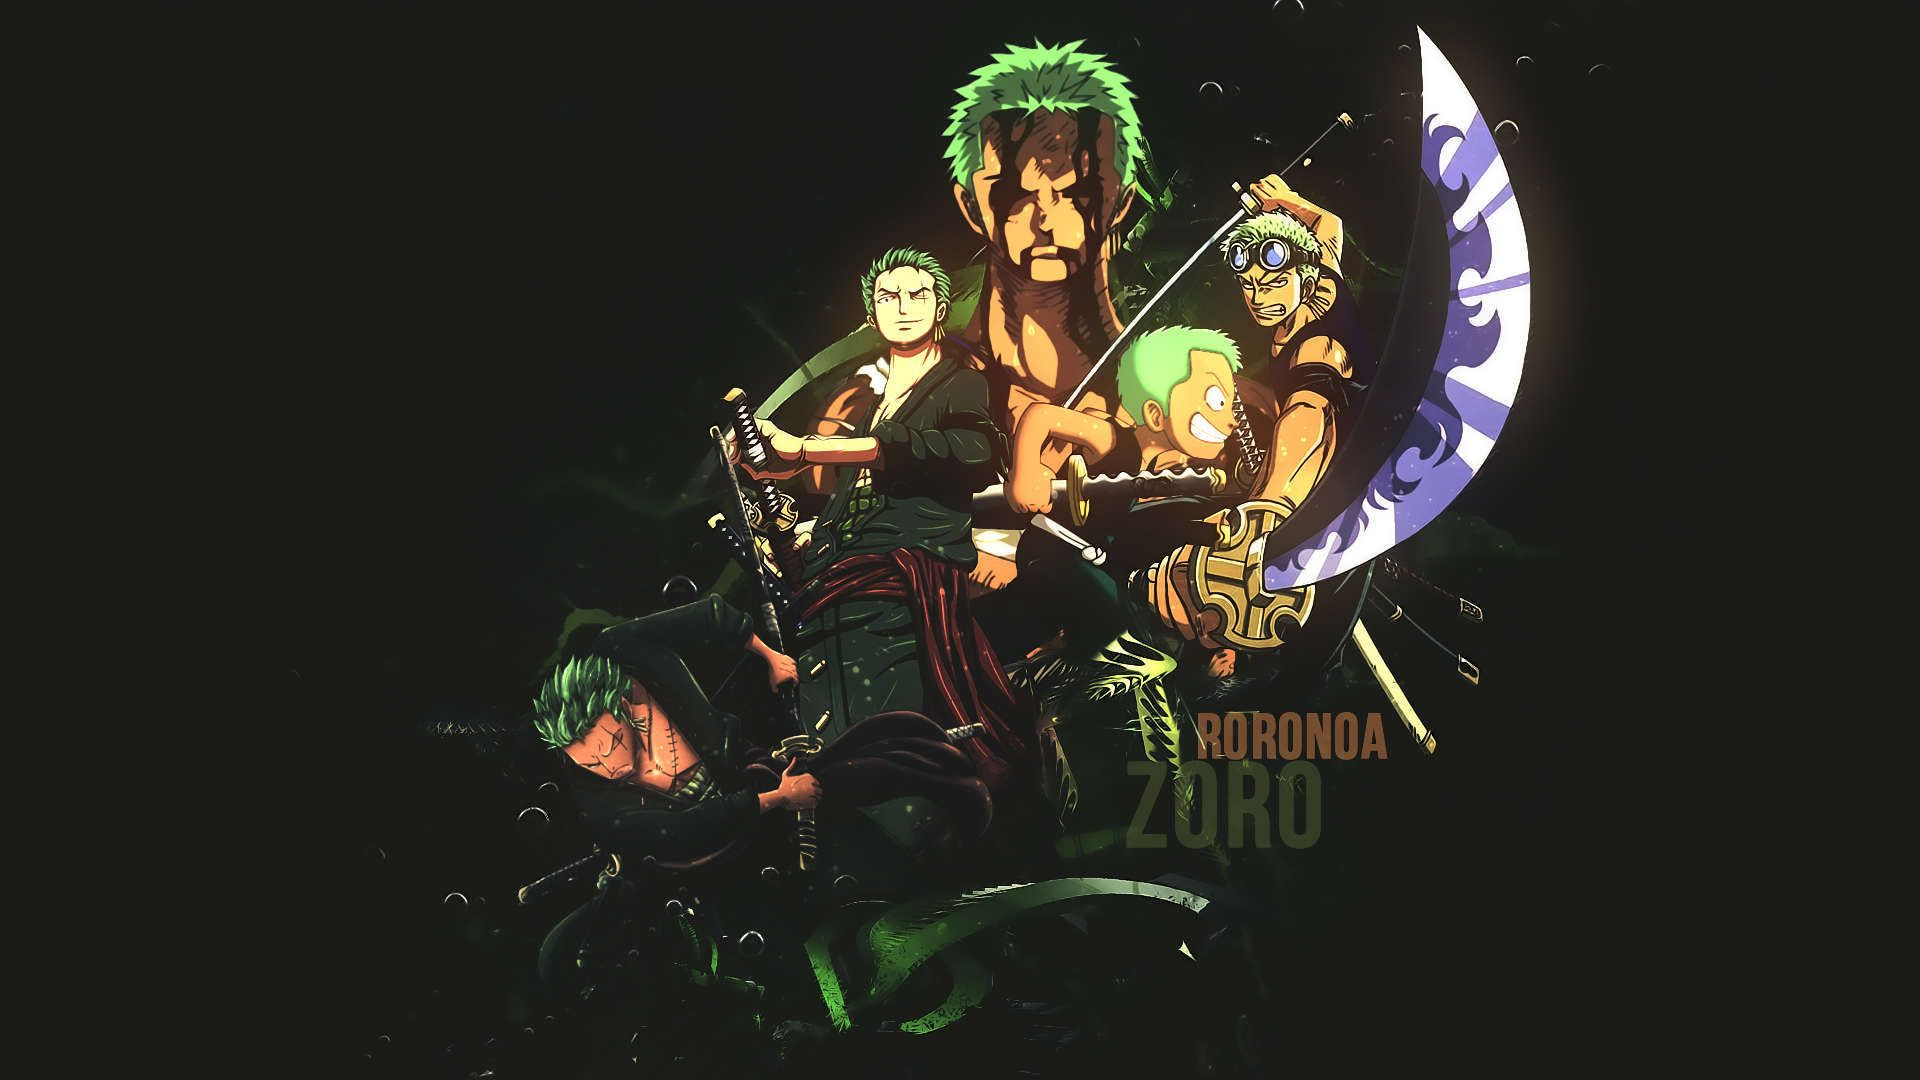 One Piece Zoro Hd Wallpapers Anime Wallpaper Hd Wallpaper Wallpaper Backgrounds